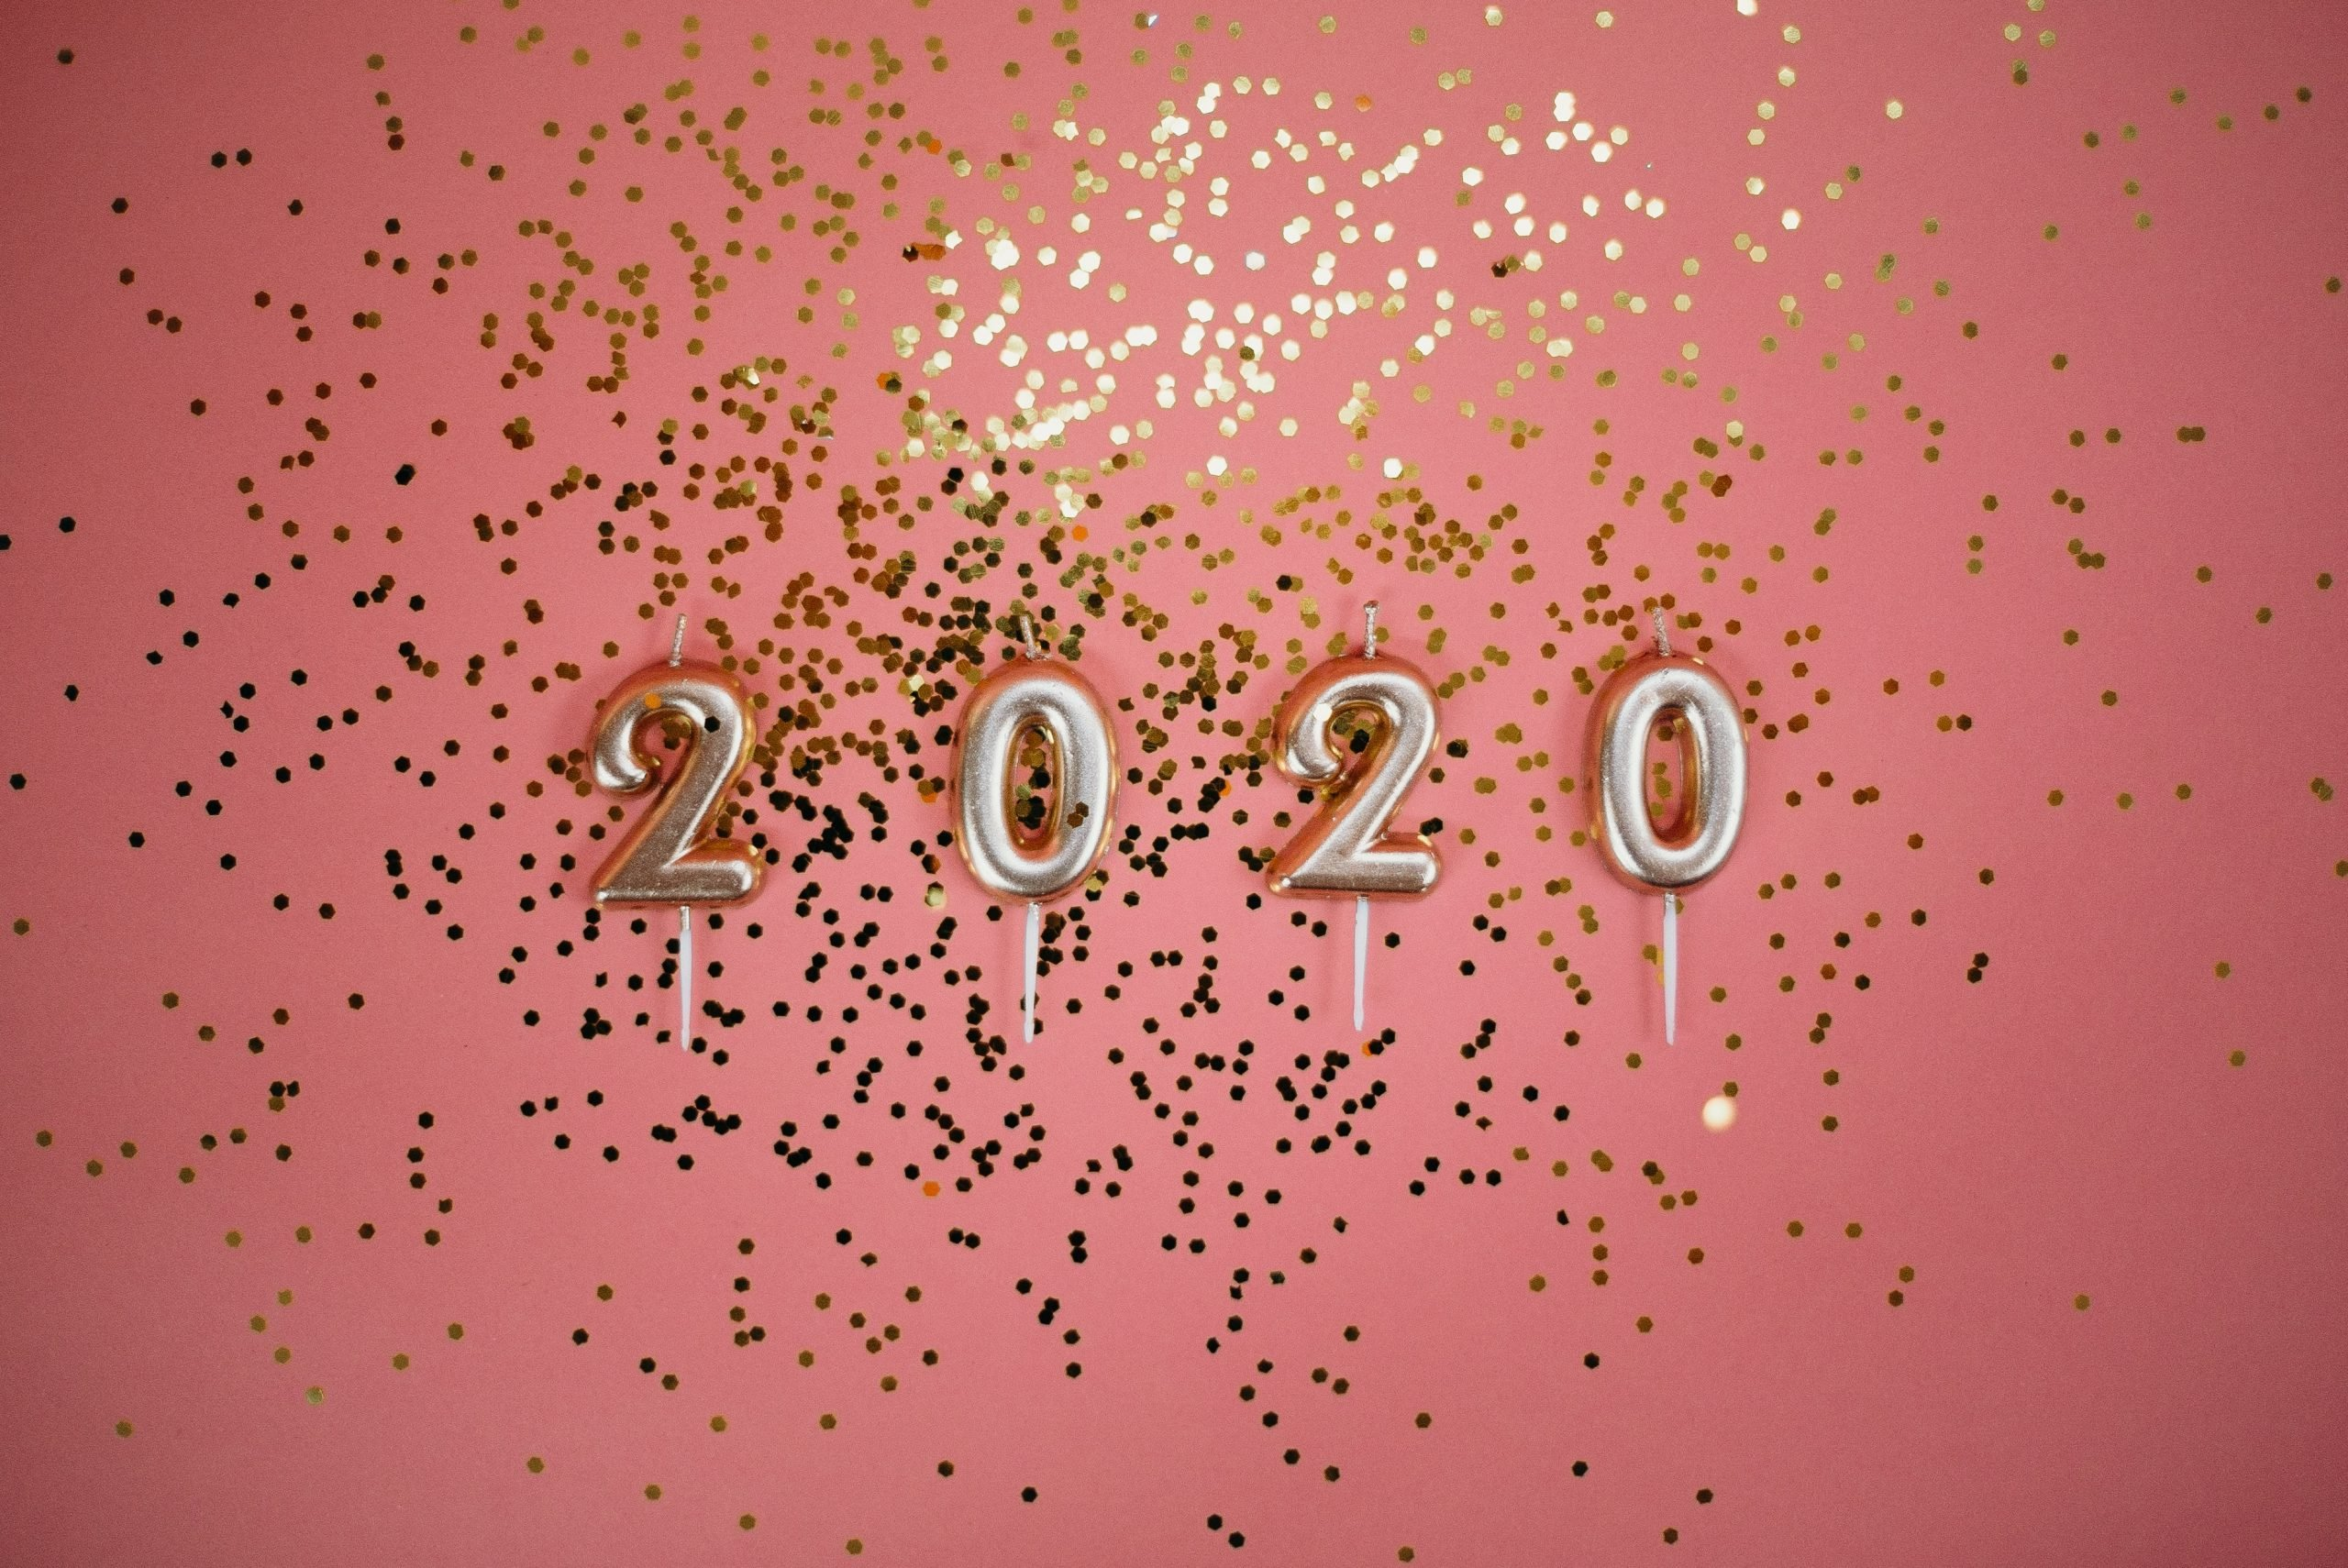 SEO Predictions for 2020 - Debunking the hype. Image shows candles displaying the year 2020.